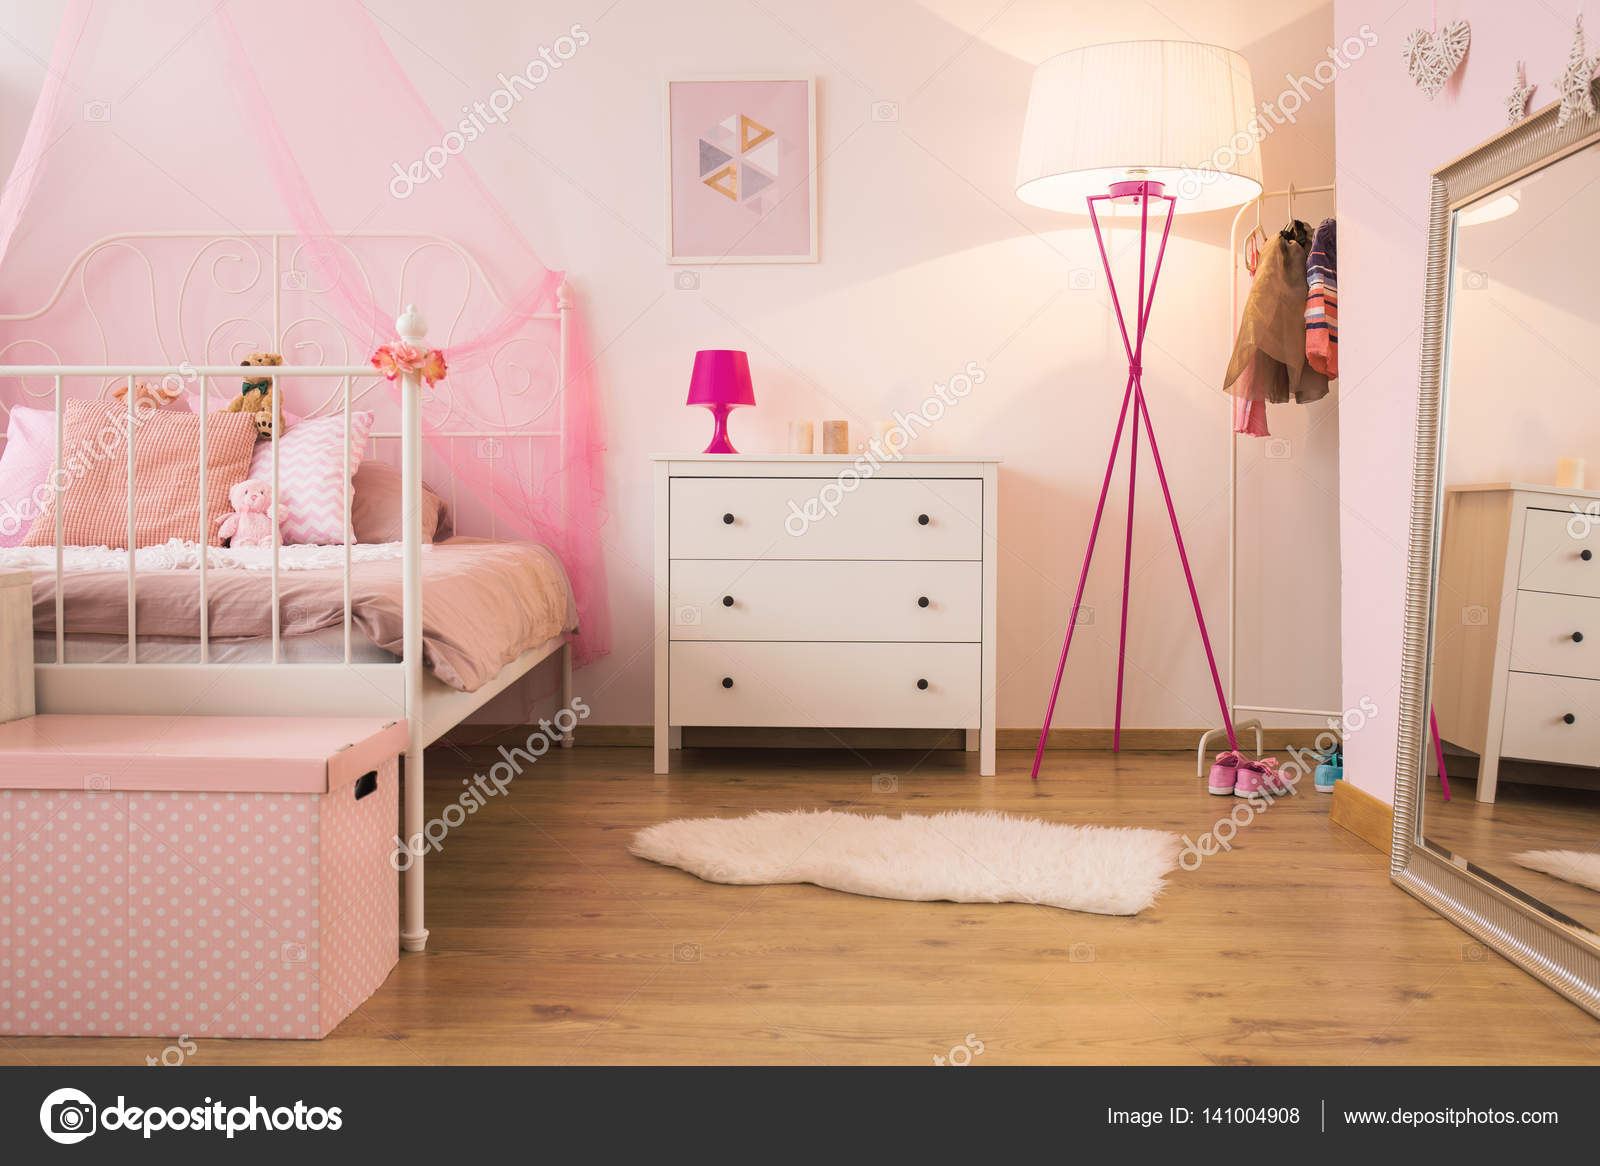 Lampe Schlafzimmer Rosa Rosa Kind Schlafzimmer Mit Lampe Stockfoto Photographee